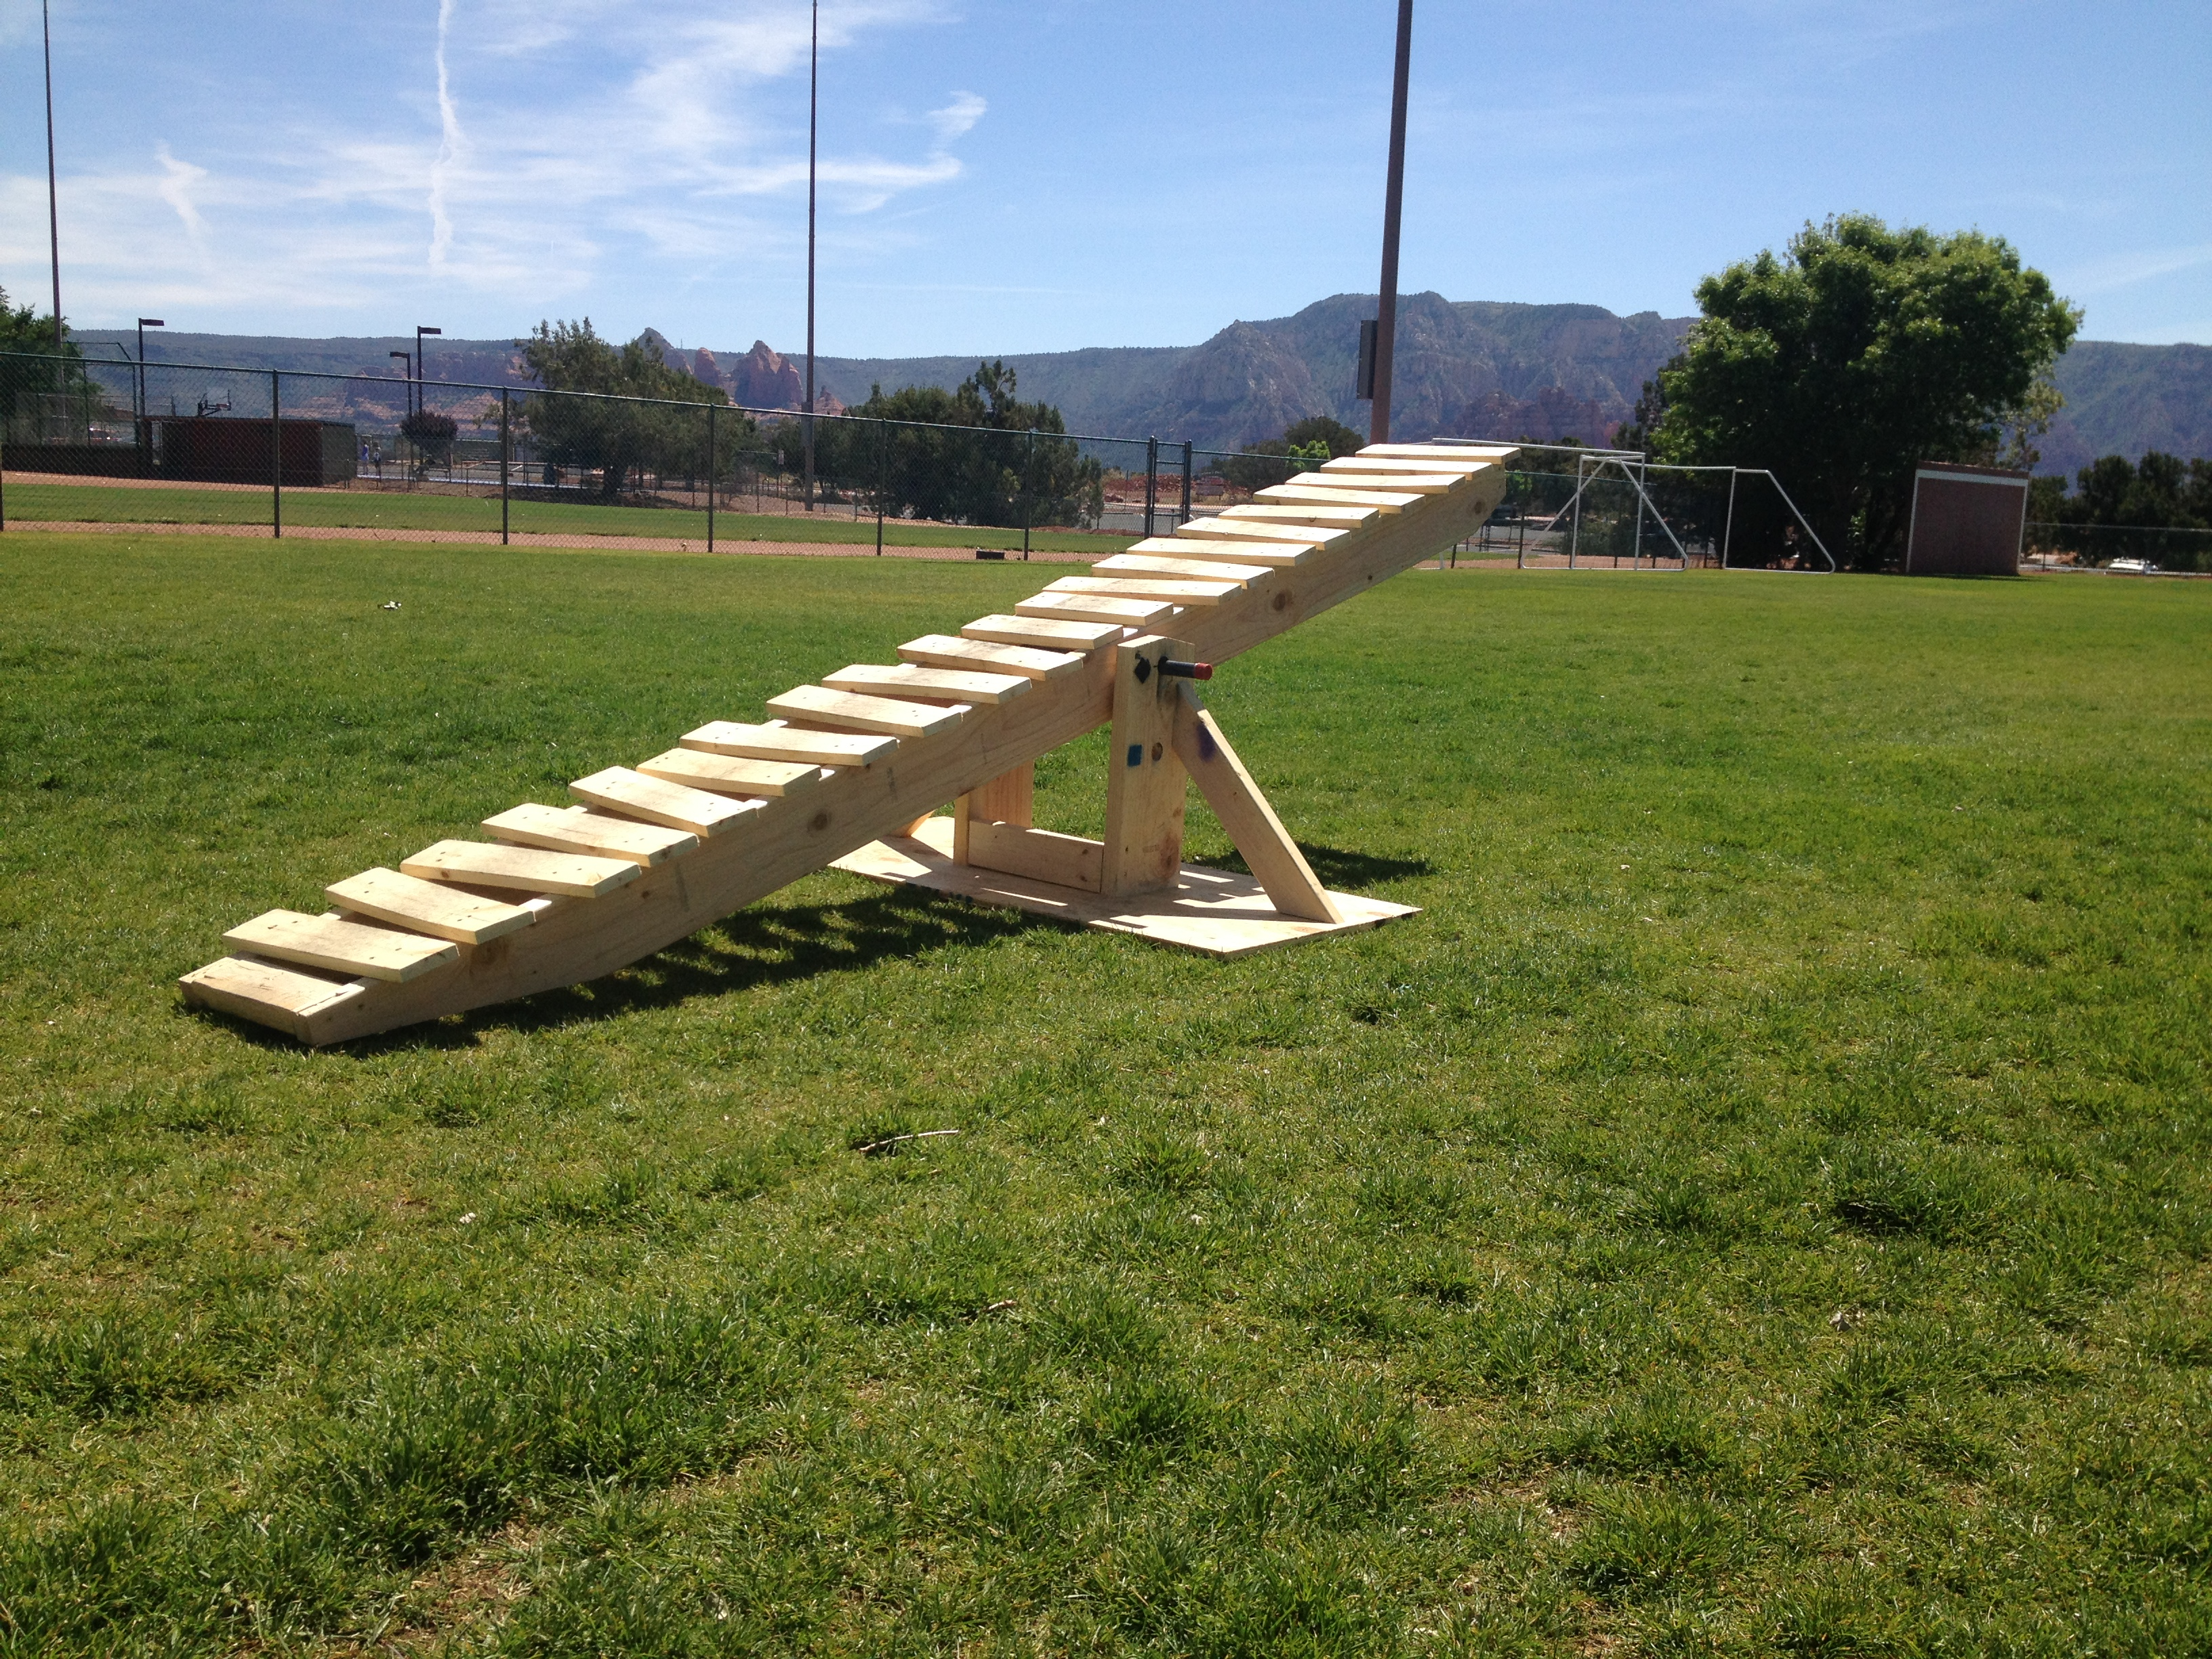 A teeter-totter to practice proper technique.